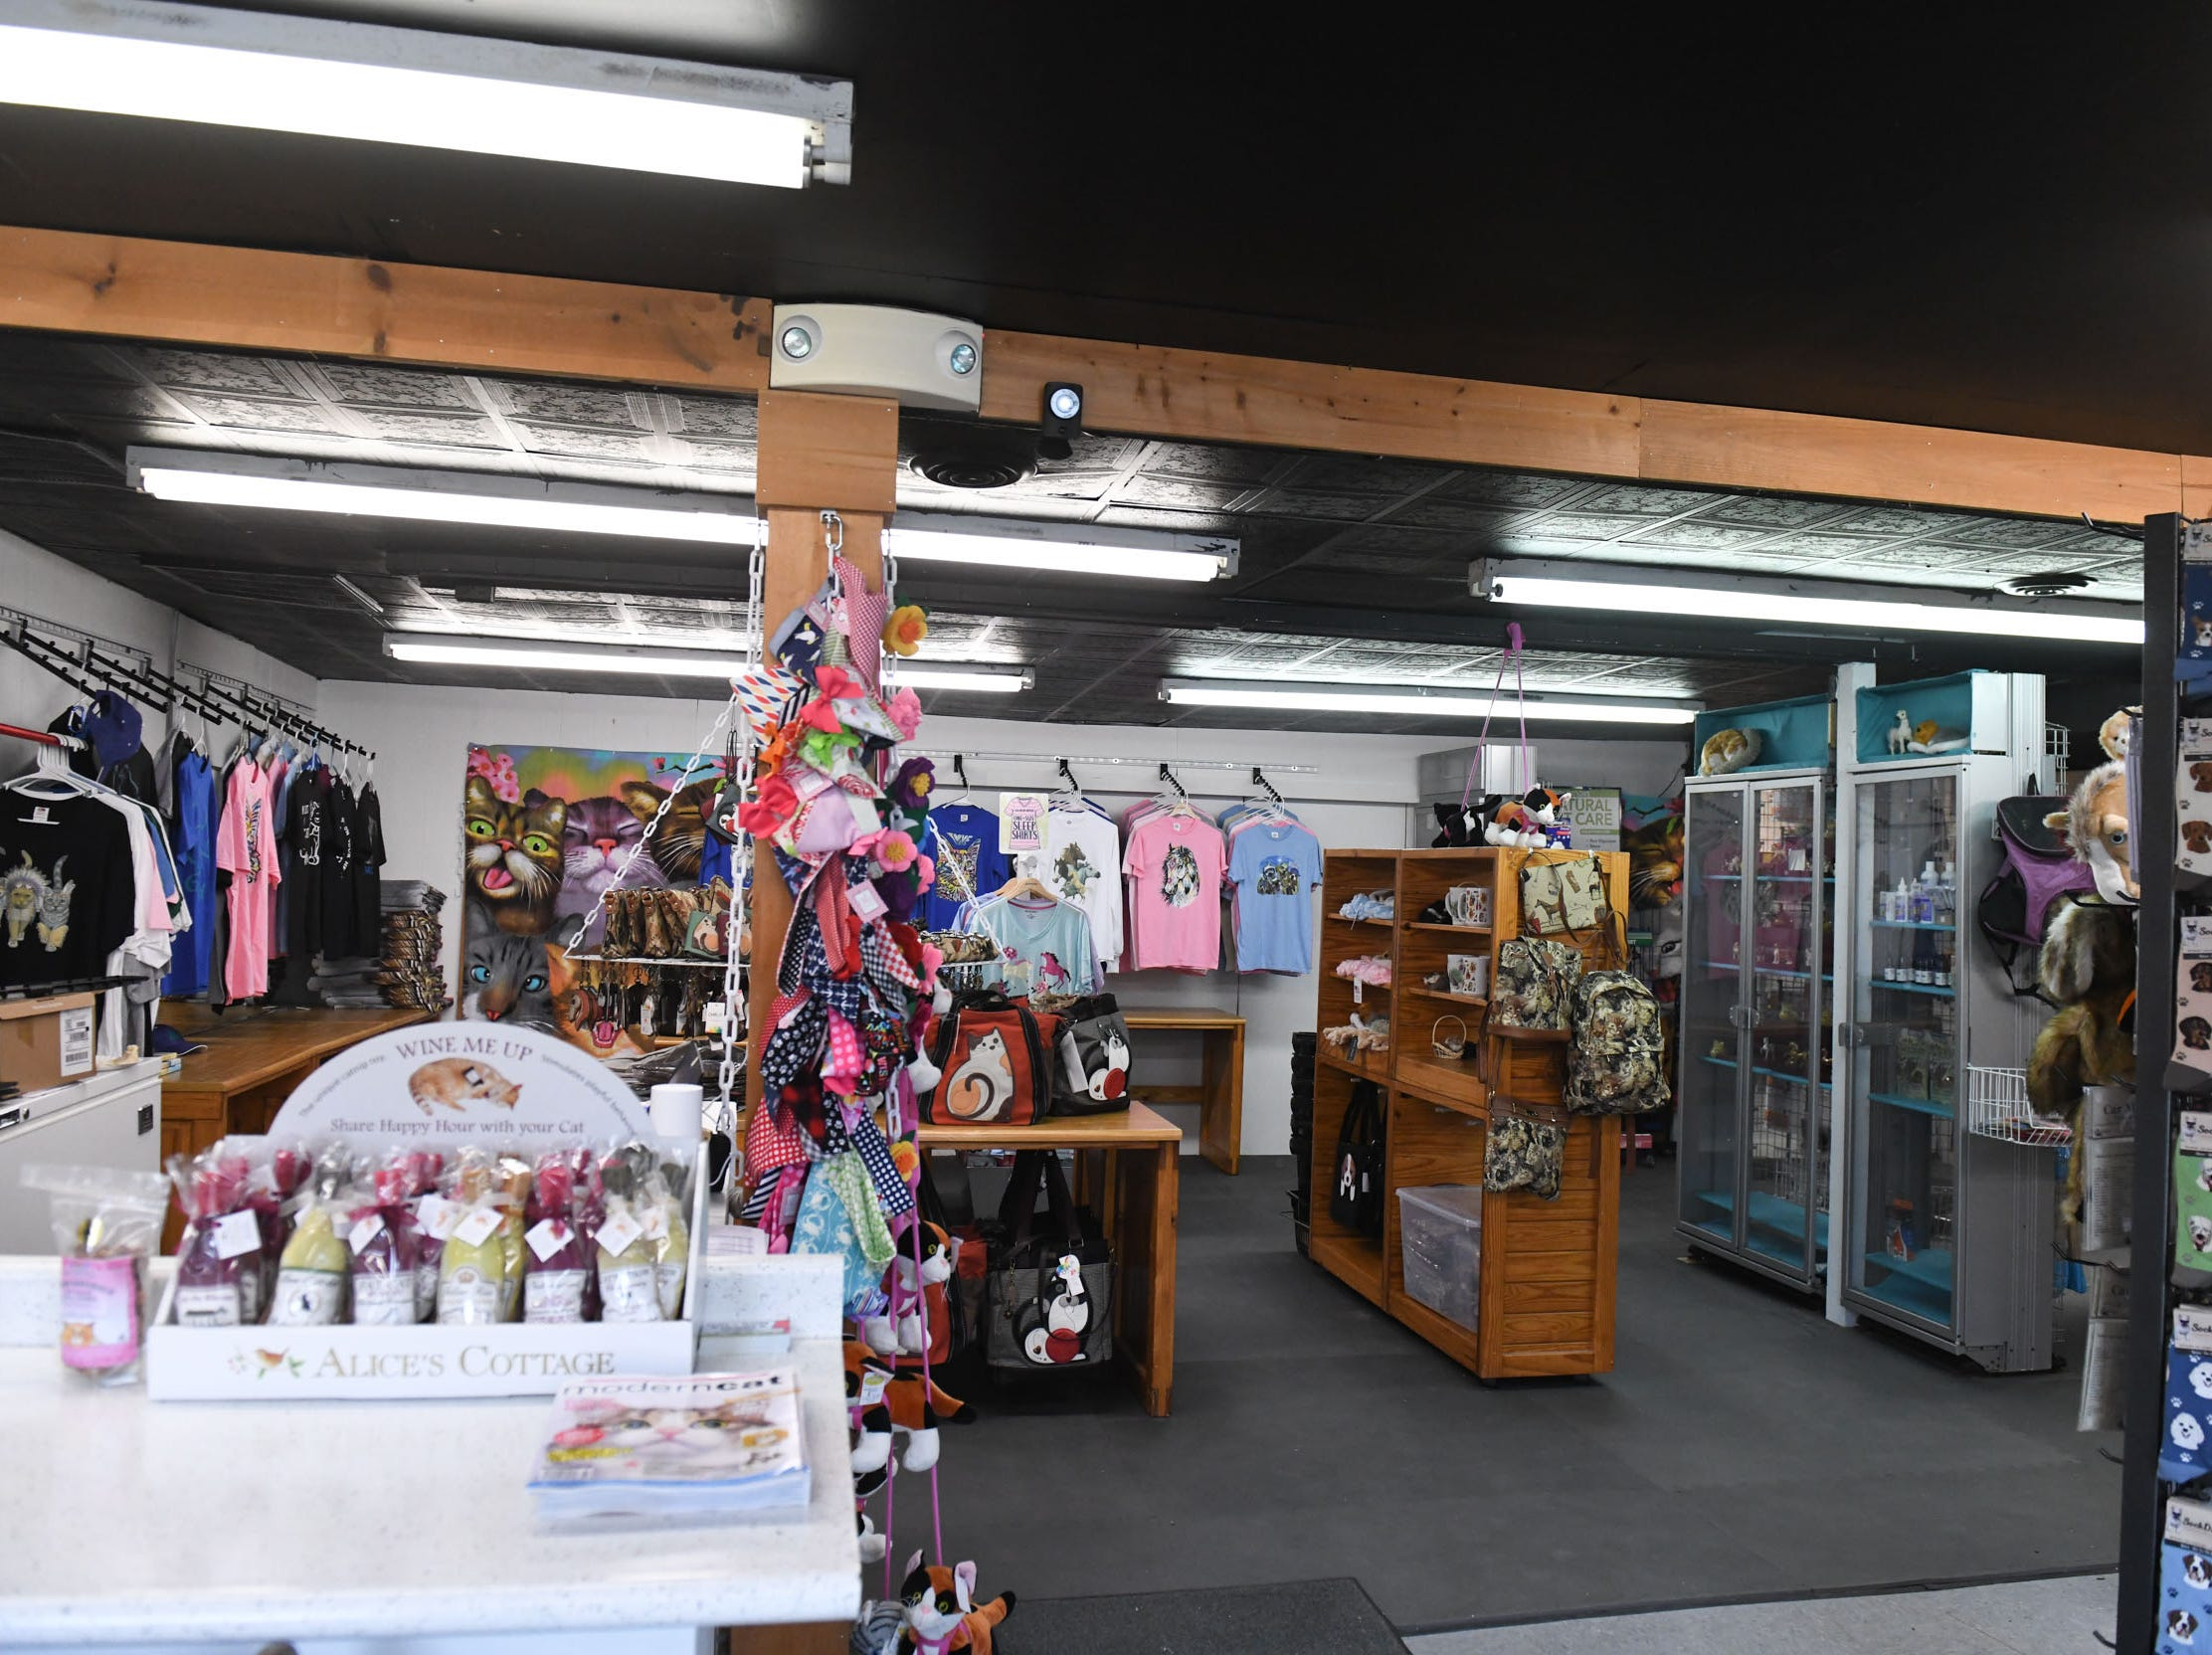 In A Cat's Eye, a new store opening on Chincoteague, Virginia in April 2019.